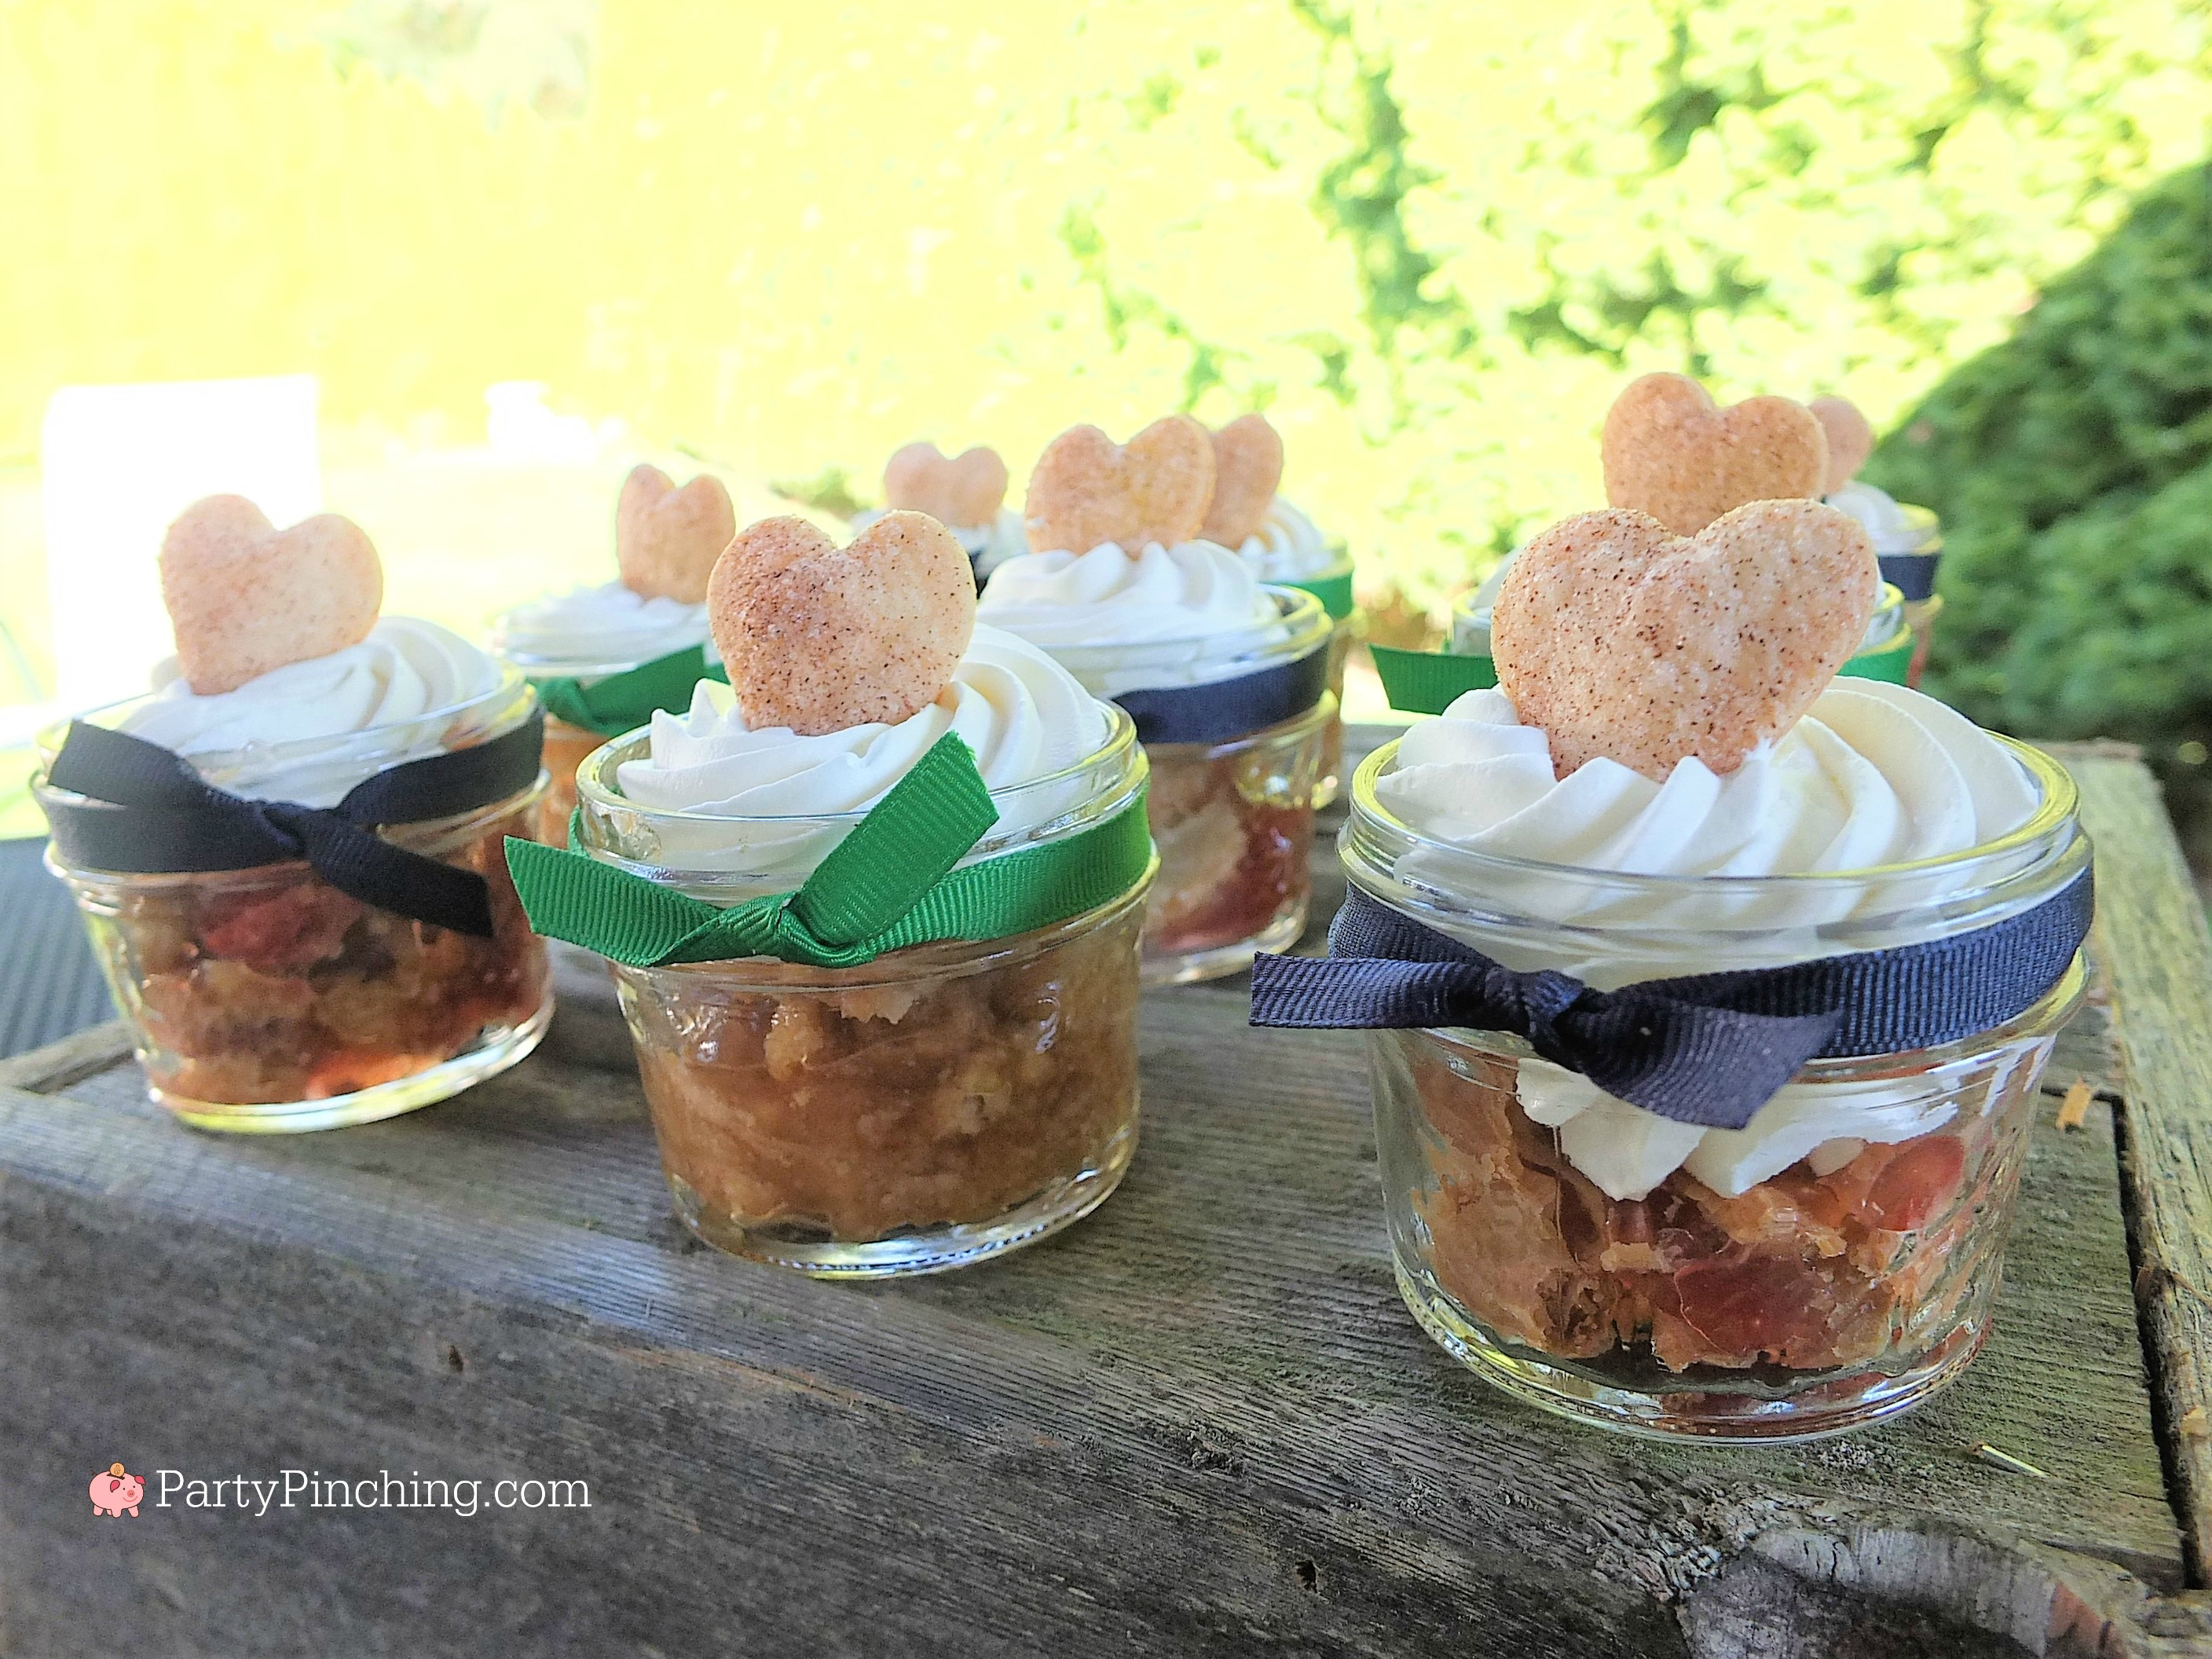 mini pies in a jar, mason jar pies,cute pies, cutie pies, easy pies, refrigerated pie crust, easy dessert, easy pies, apple rhubarb pie